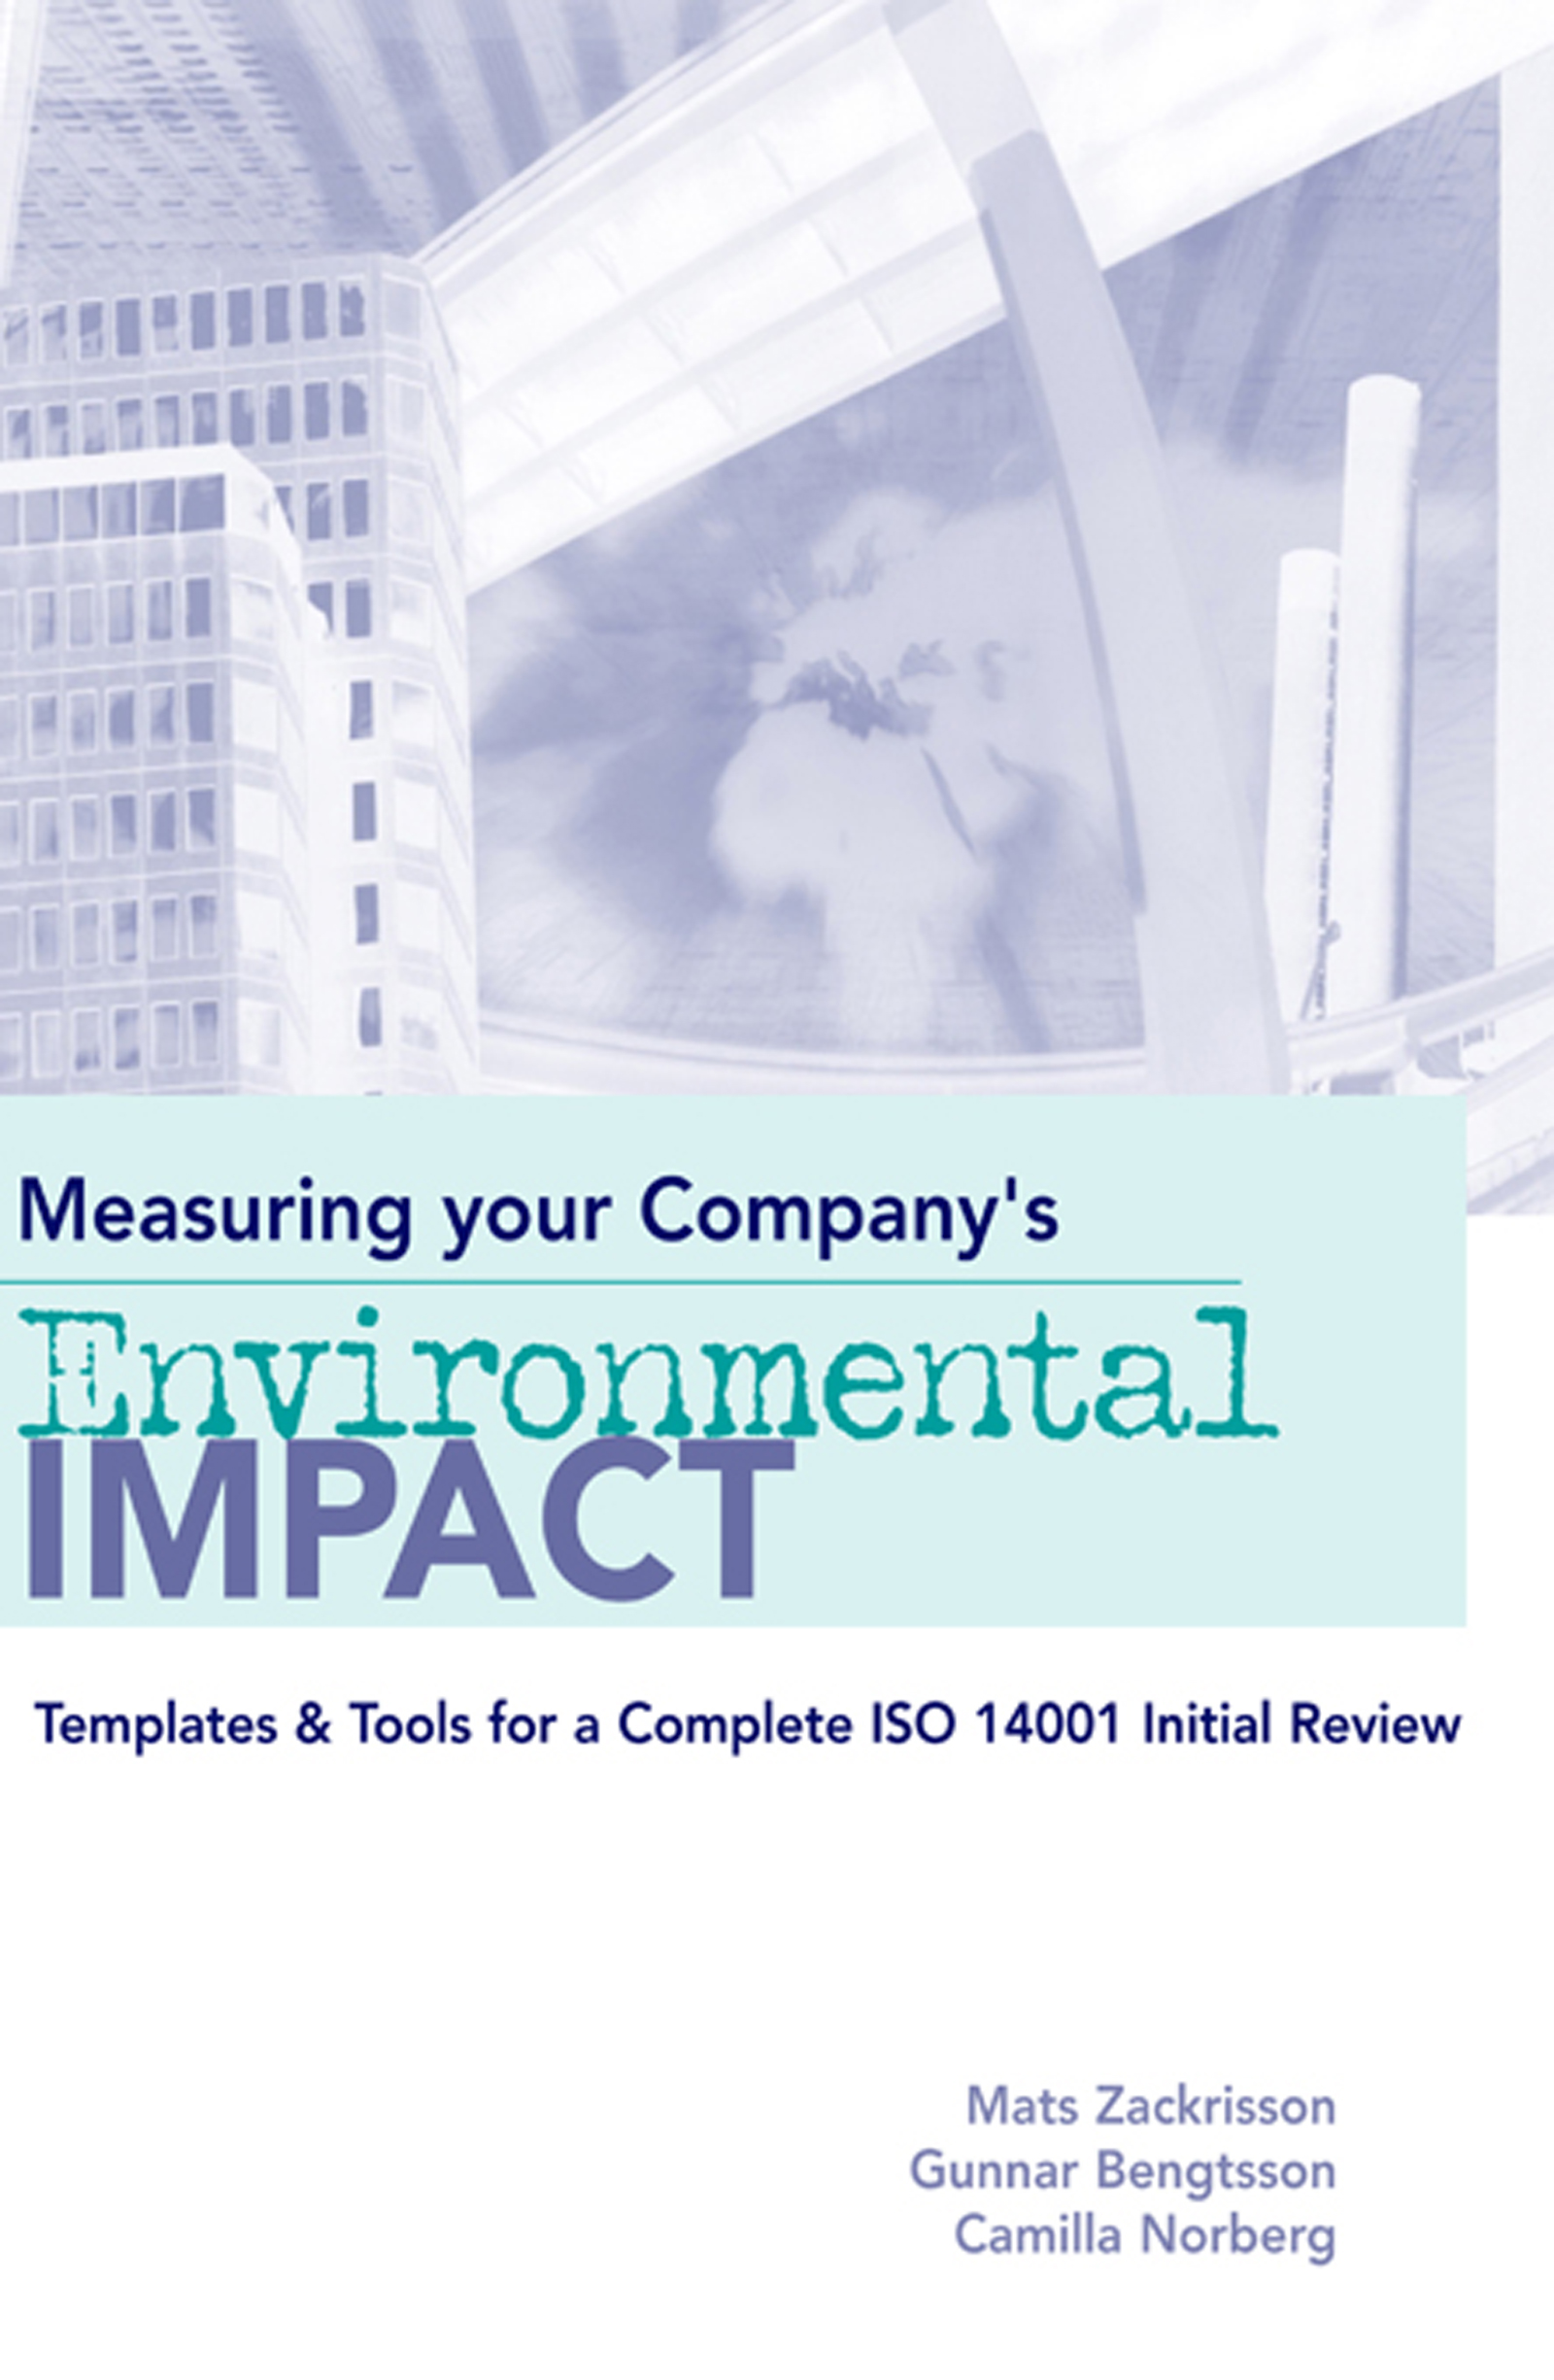 Measuring Your Company's Environmental Impact